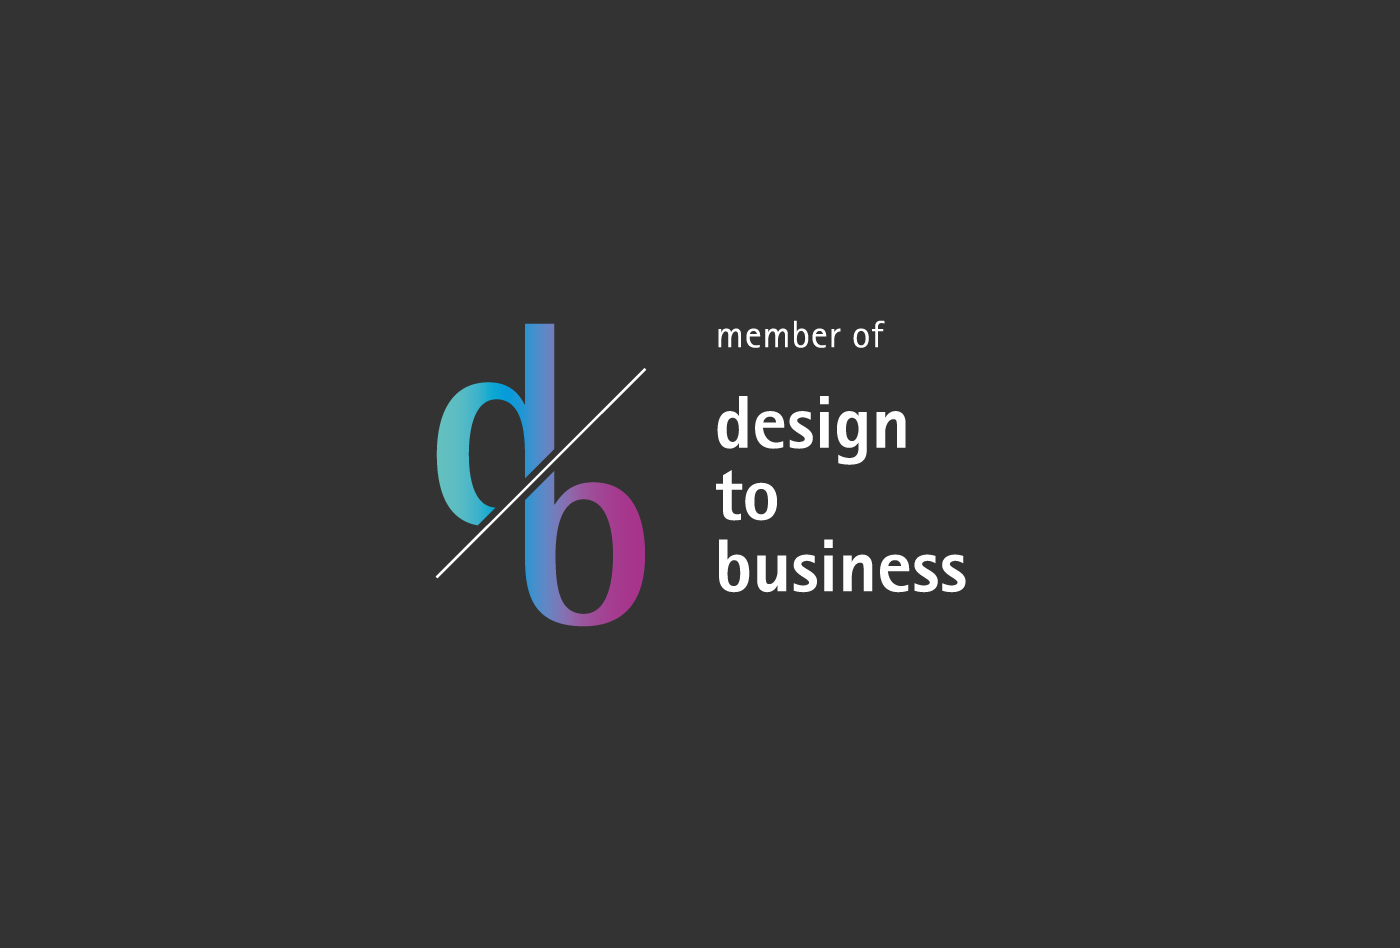 speziell - member of the Design to Business network